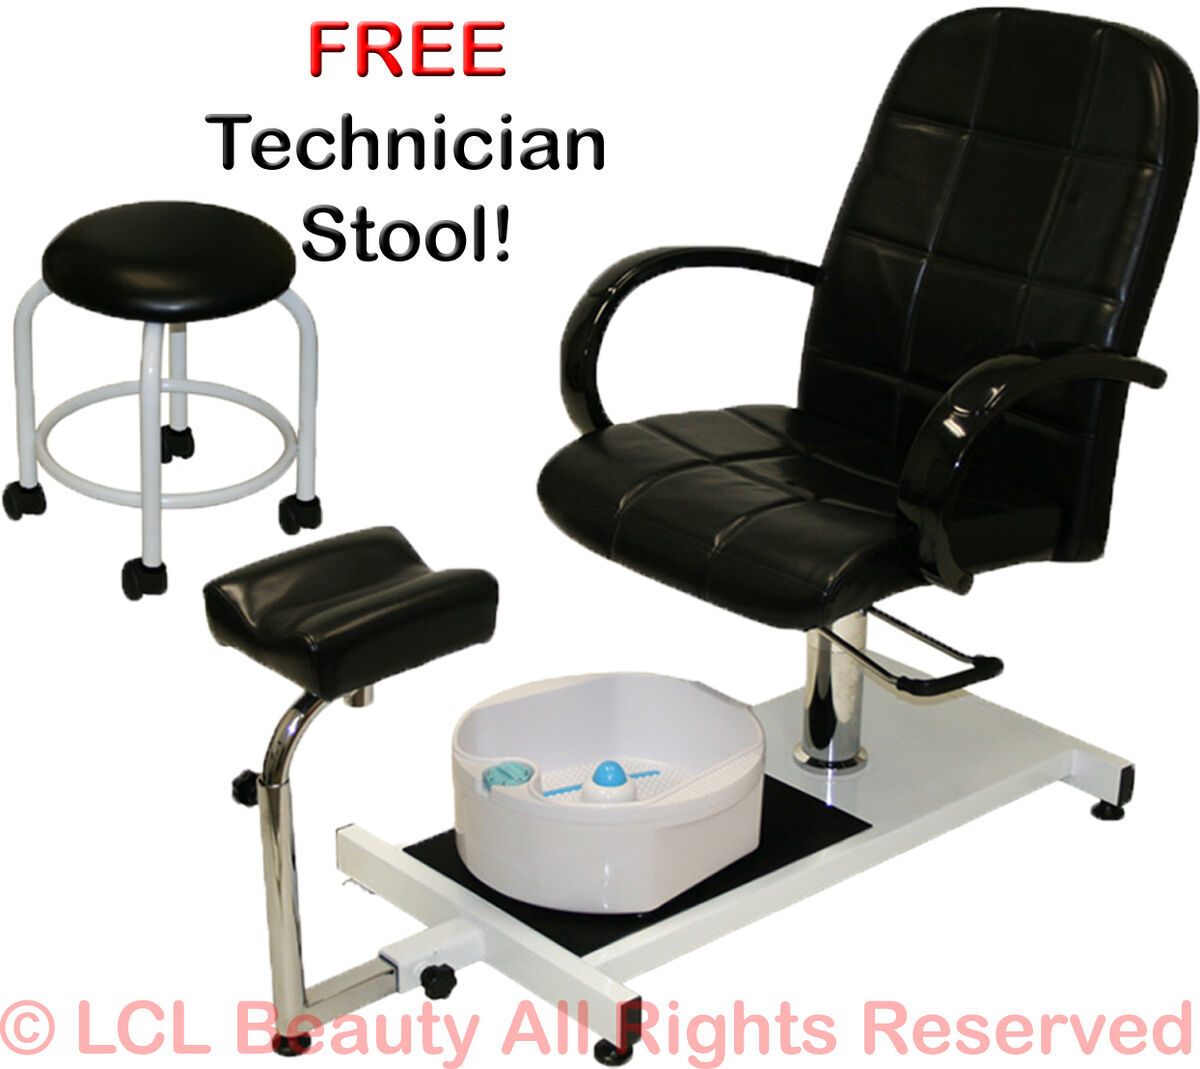 Pedicure Unit Station Hydraulic Chair Massage Foot Spa Beauty Salon Equipment